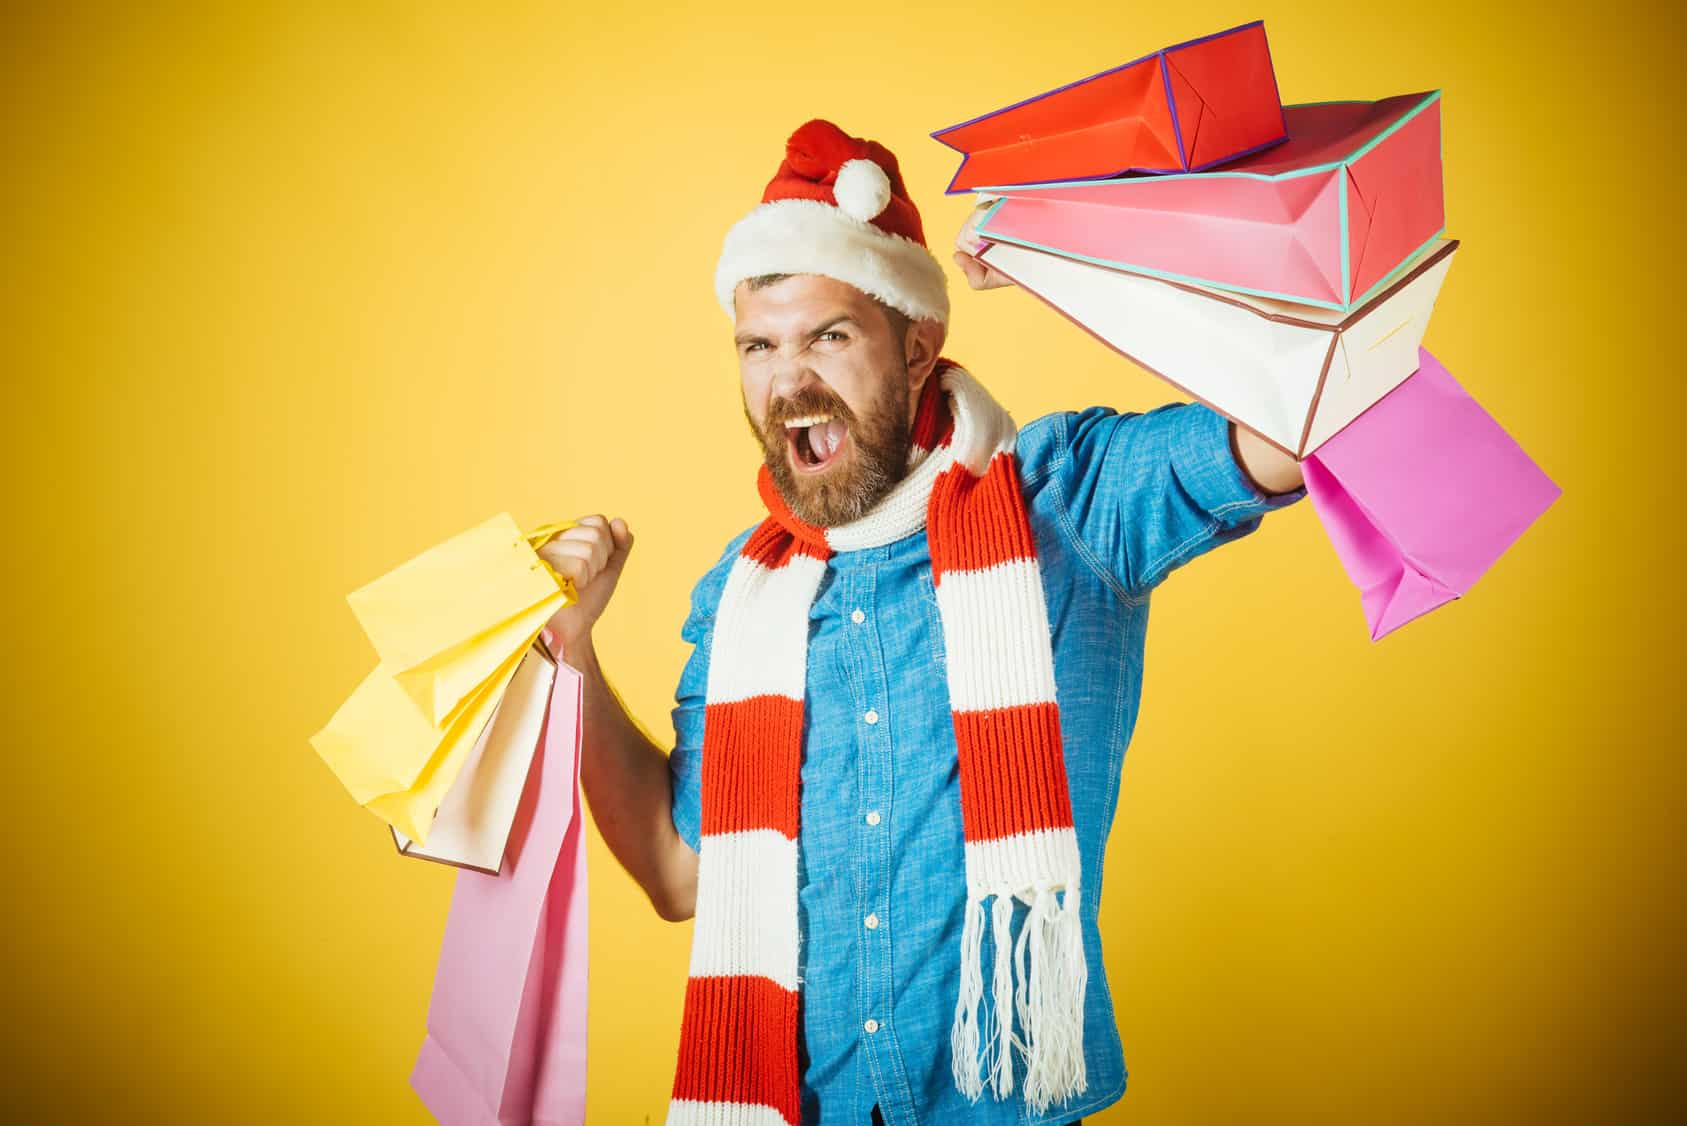 Too Many Gifts for the Holidays? How Do you Tell a Loved One Enough- Debt.com